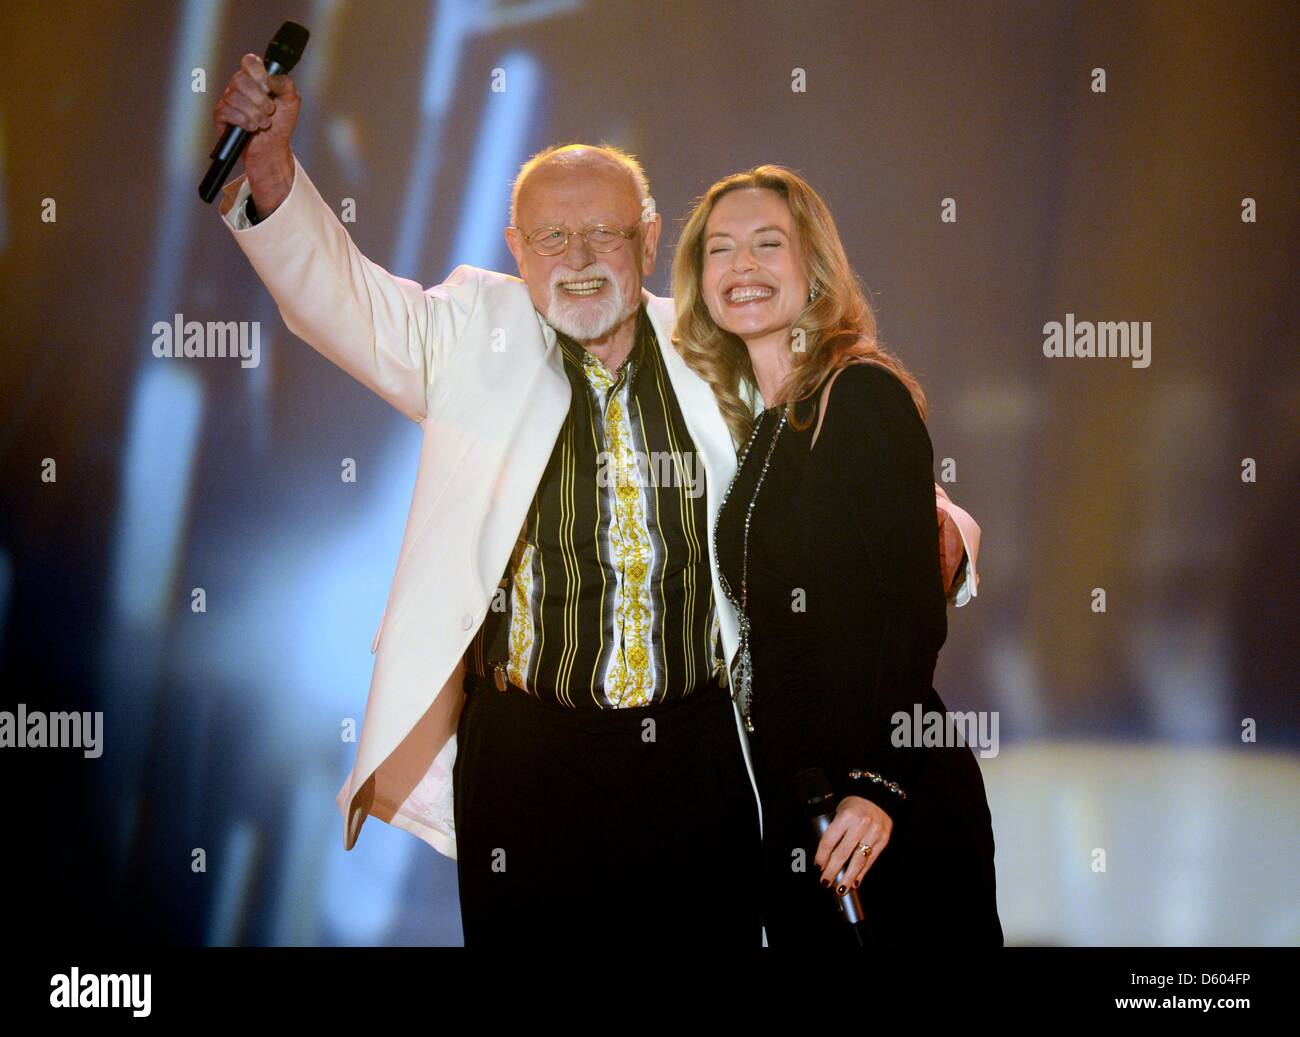 Singer Roger Whittaker and his daughter Jessica recording a ...